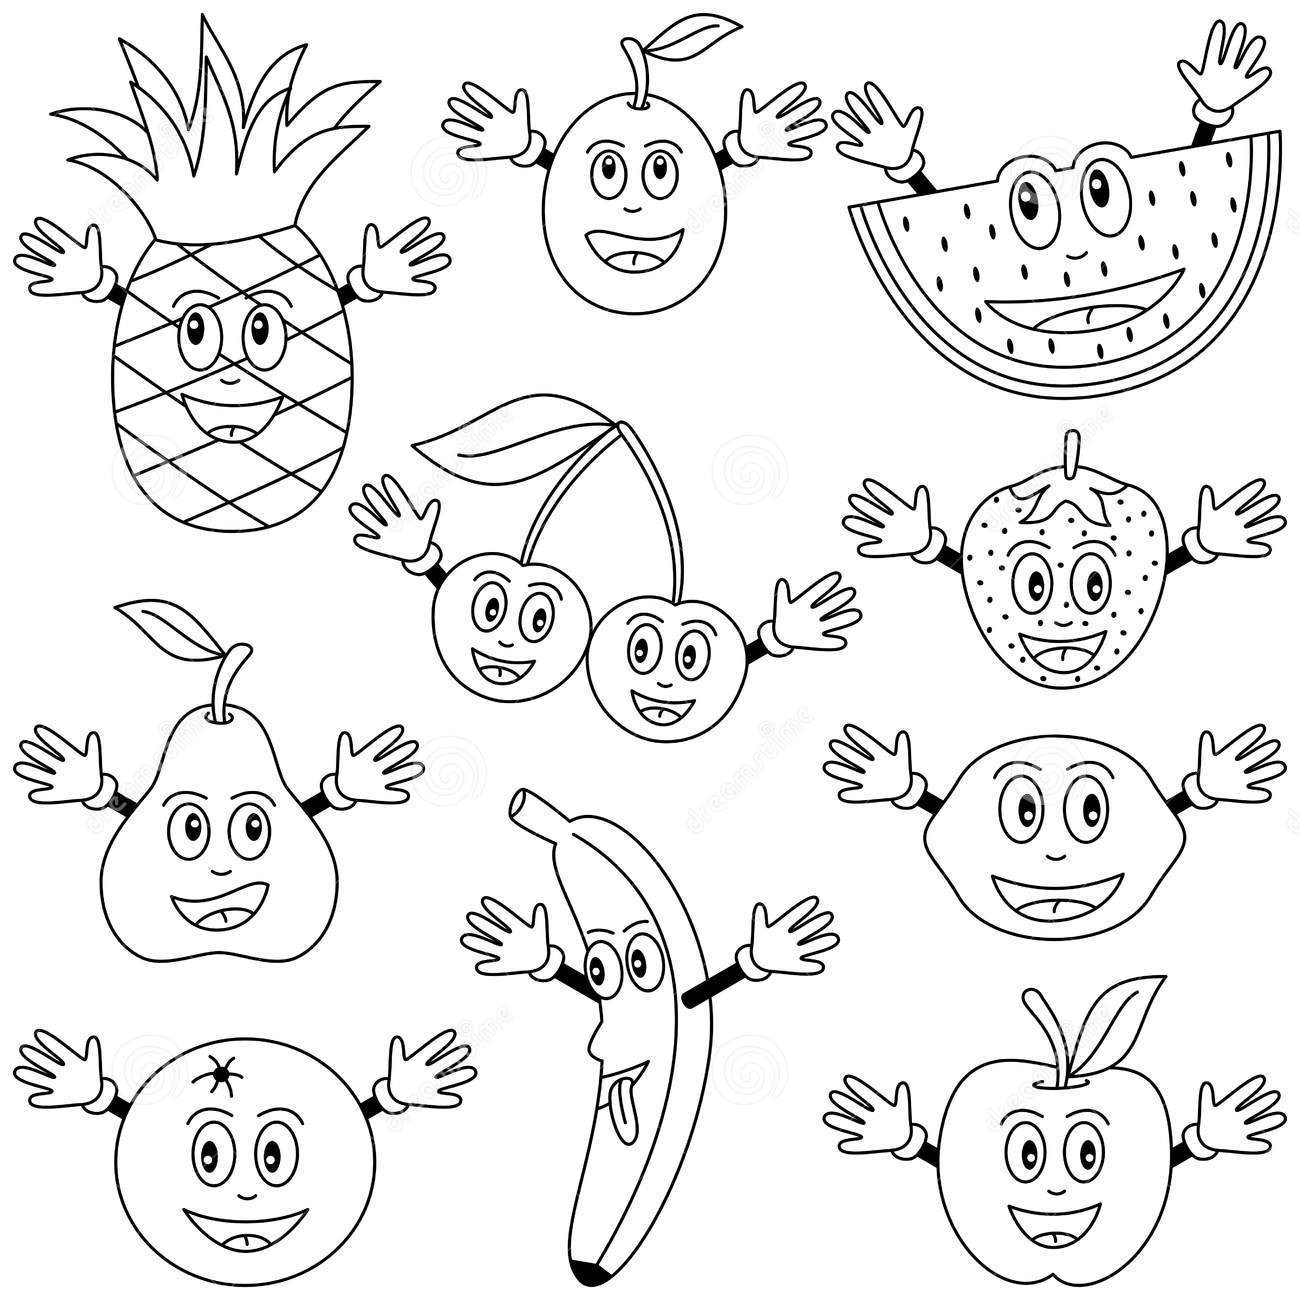 coloring pages crafts and worksheets for preschool toddler and